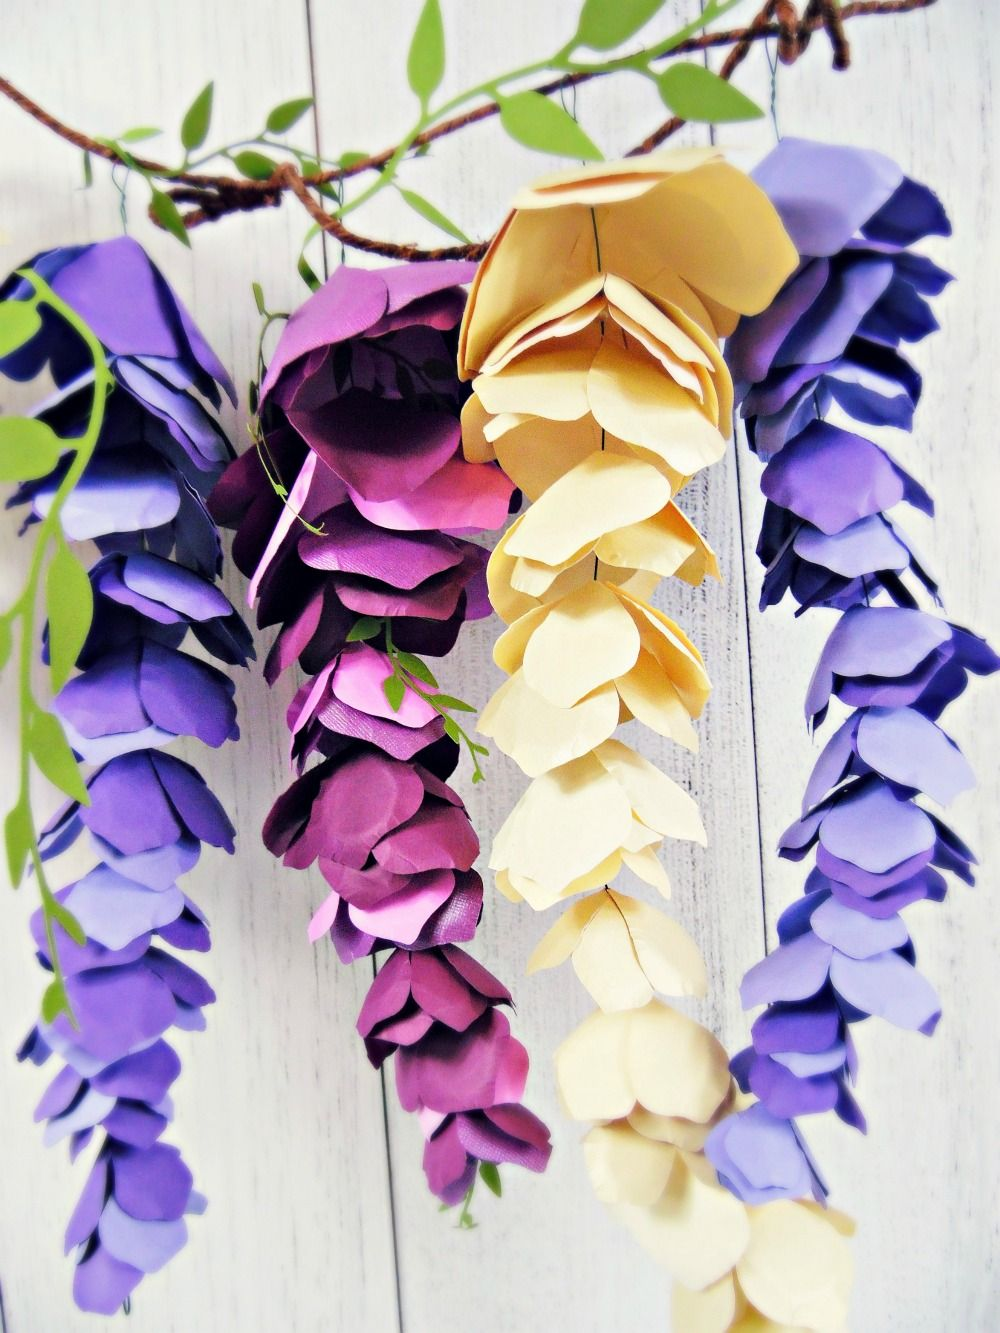 Diy paper wisteria paper wisteria templates tutorial catching mamas gone crafty paper hanging wisteria diy paper flowers dhlflorist Choice Image